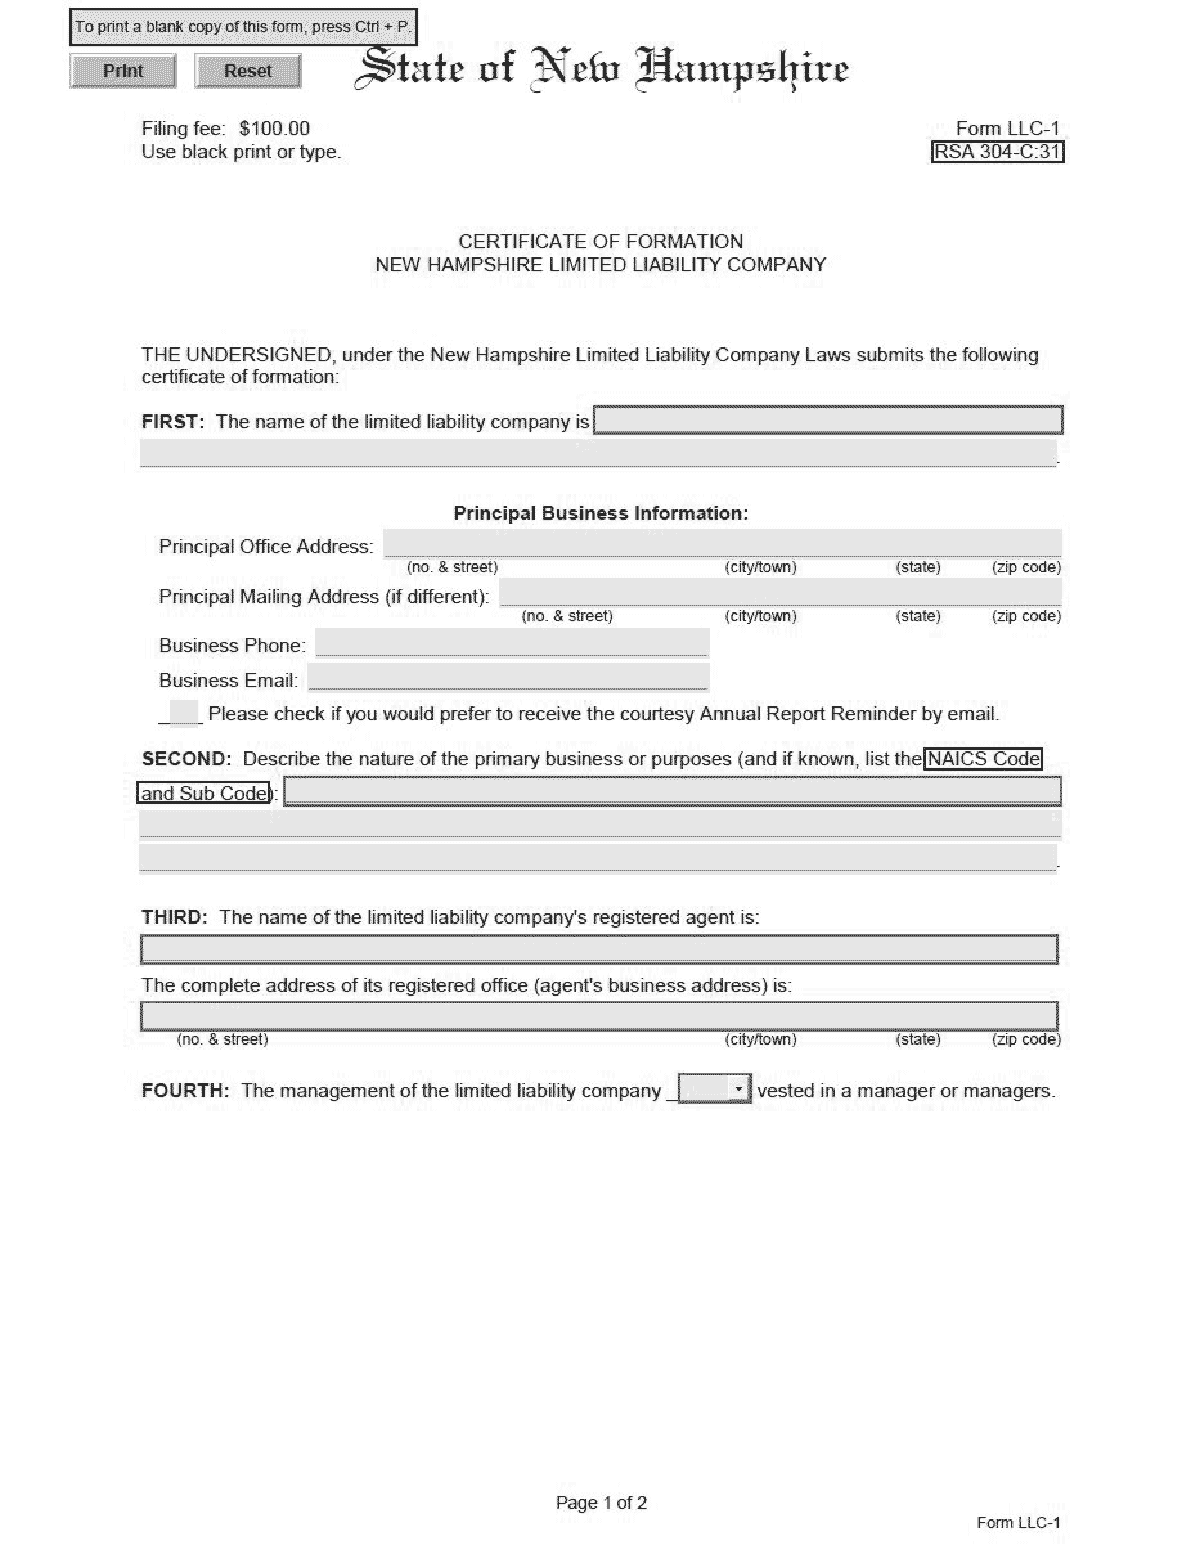 New Hampshire LLC Formation Document